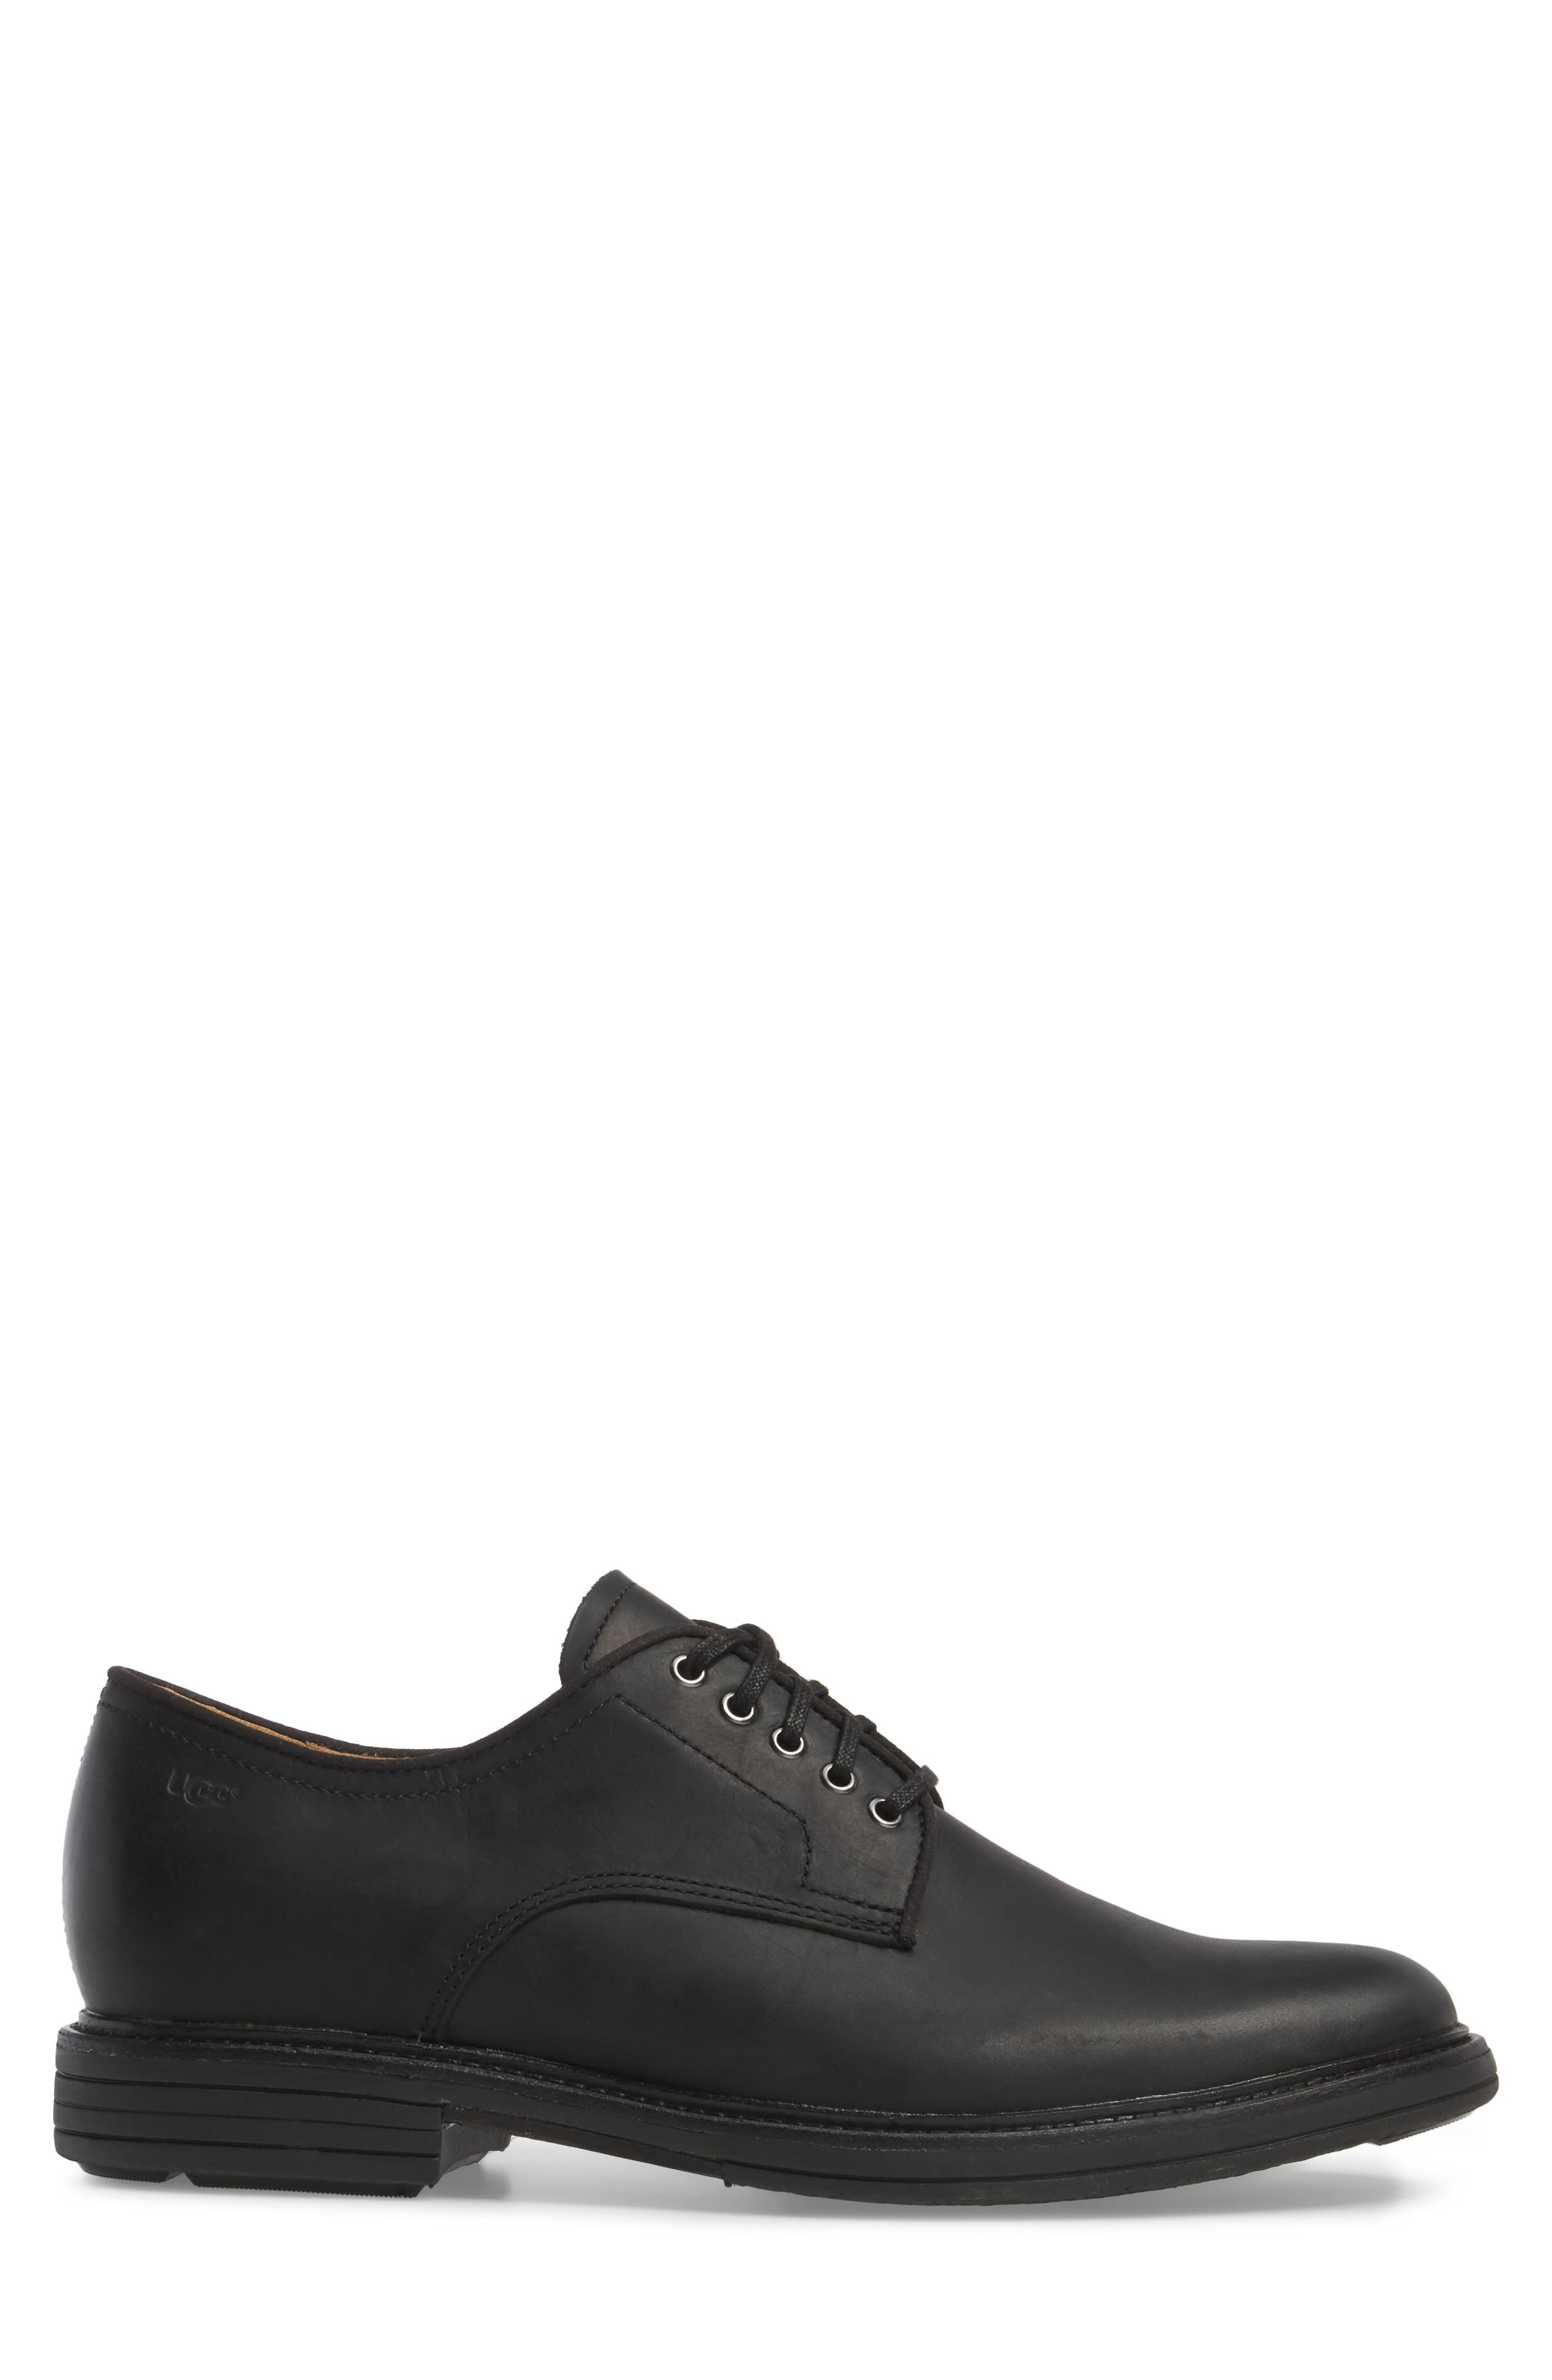 Jovin Buck Shoe,                             Alternate thumbnail 3, color,                             Black